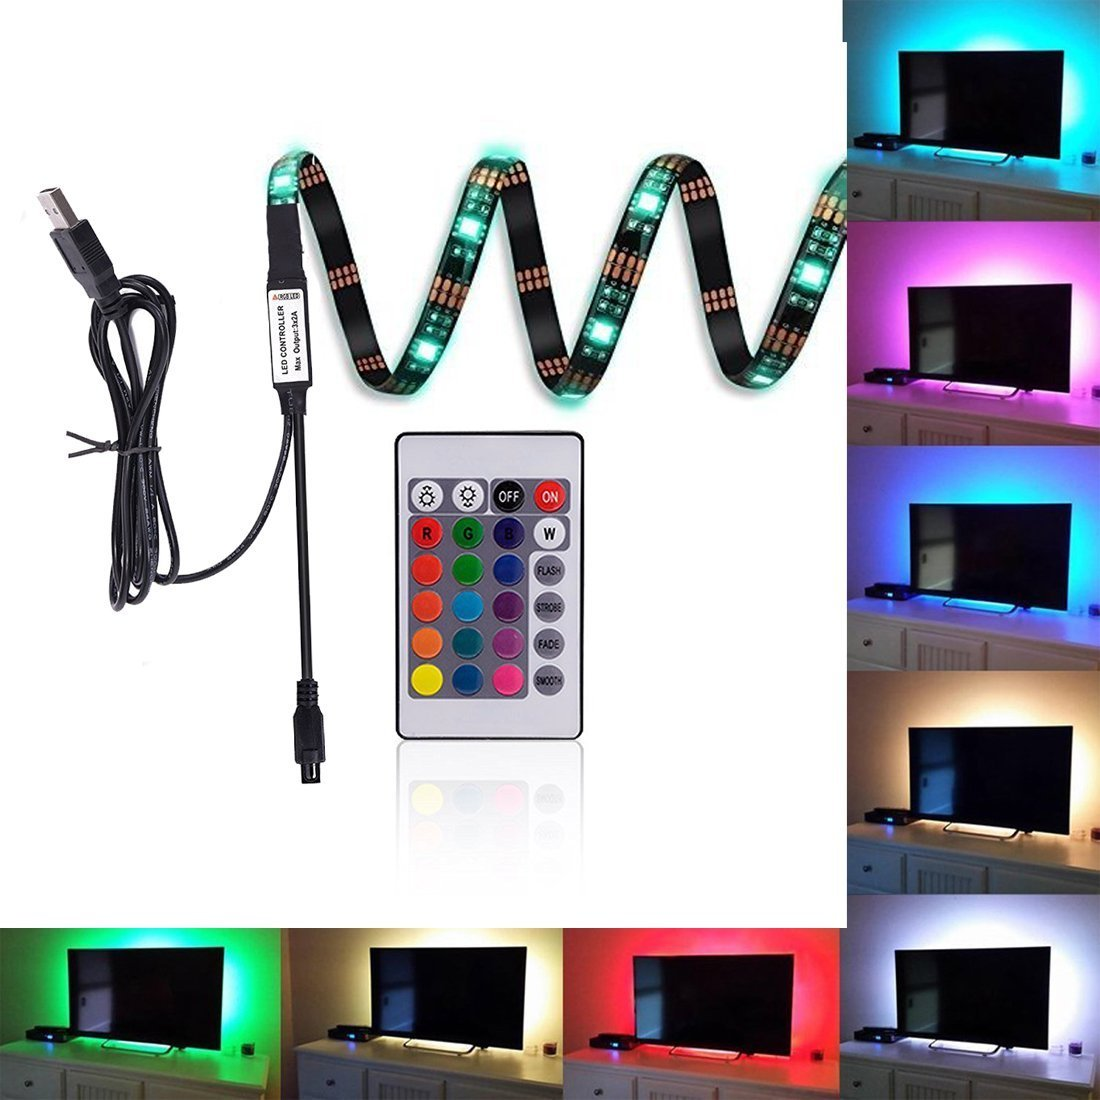 LED TV Backlight Bias Lighting Kits for HDTV USB Powered 2 RGB Multi Color Led Light Strip with Remote Control Home Theater Accent Lighting Kits (Reduce Eye Fatigue and Increase Image Clarity) Kohree